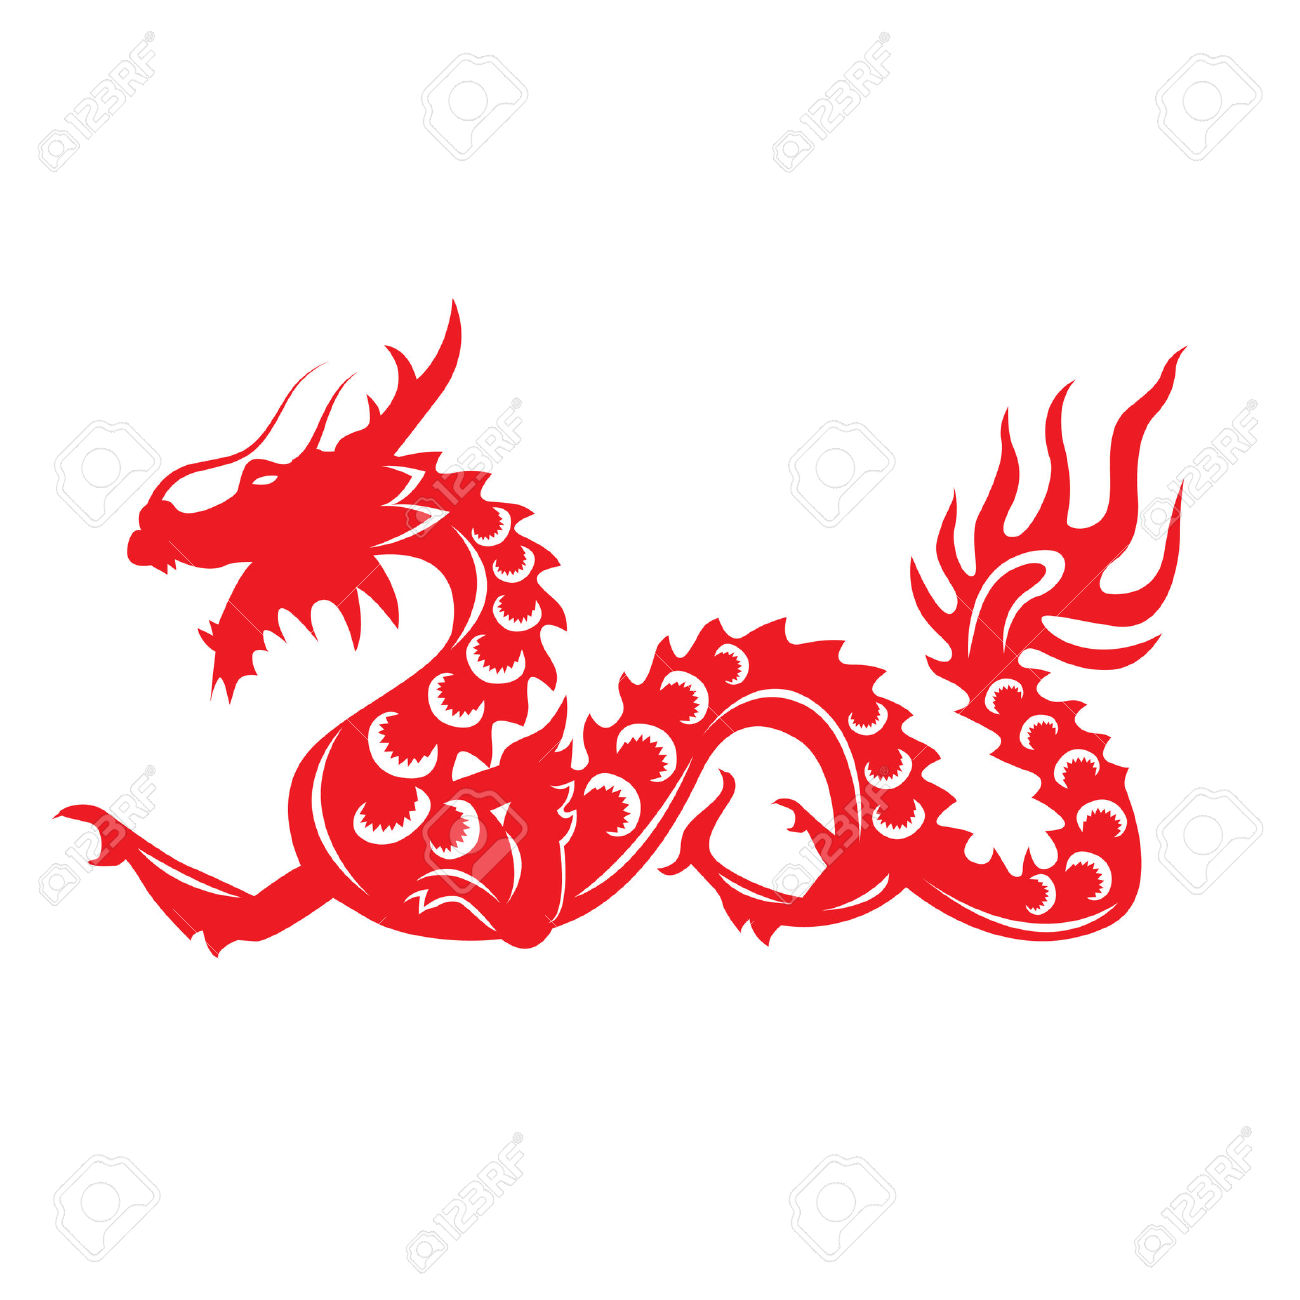 Dragon clipart dragon chinese. Station